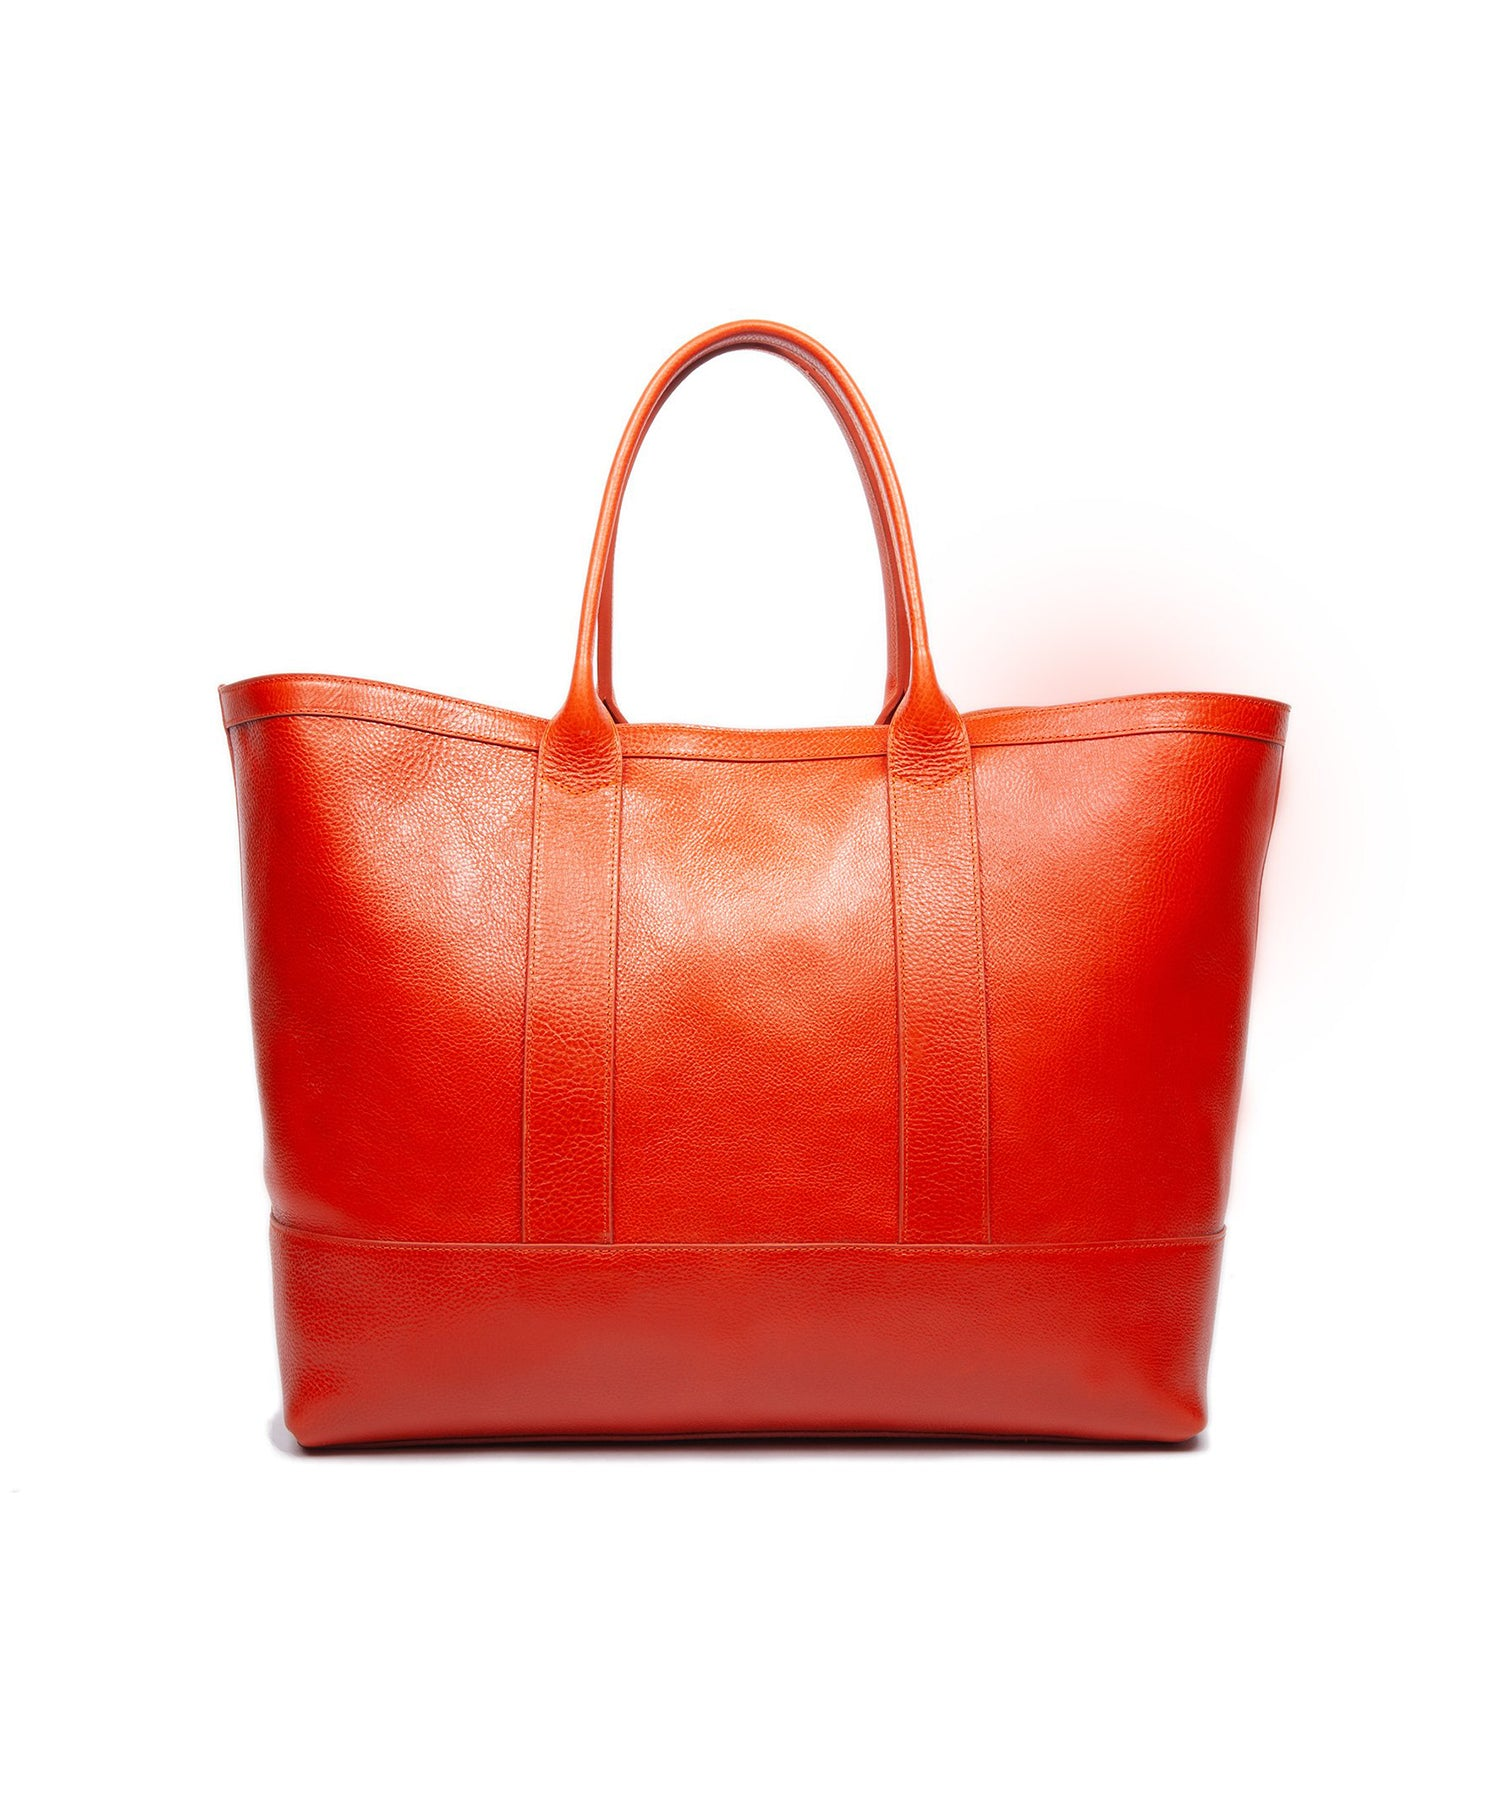 Lotuff Leather Working Tote II in Orange